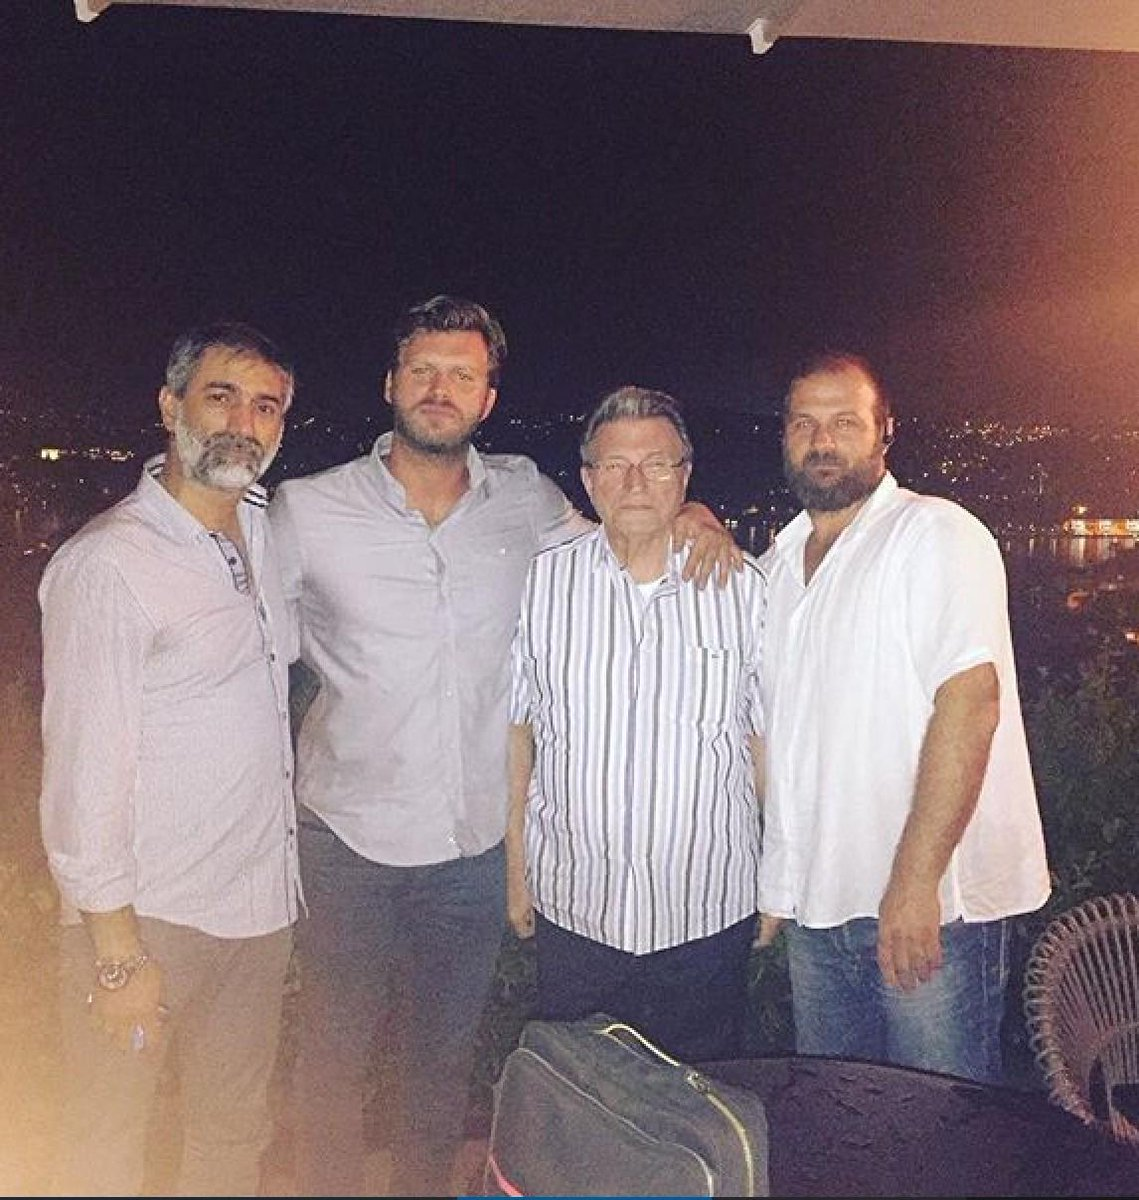 Kivanc Tatlitug Fans On Twitter KivancTatlitug With His Father Erdem And Brothers TugayCem